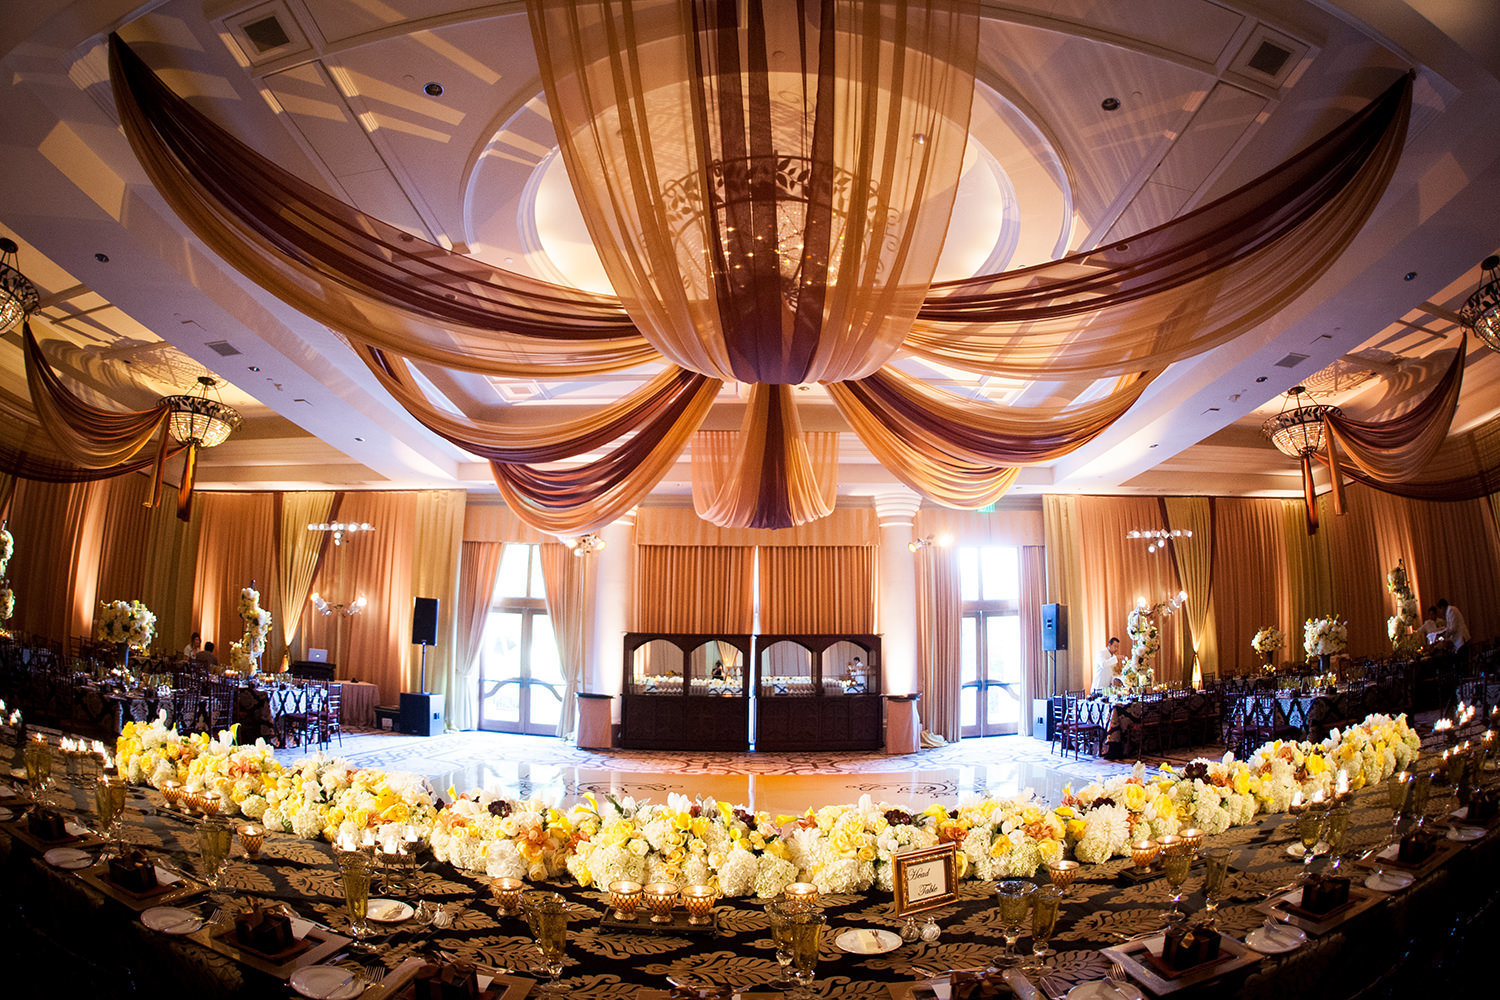 Elaborate and elegant wedding reception room design